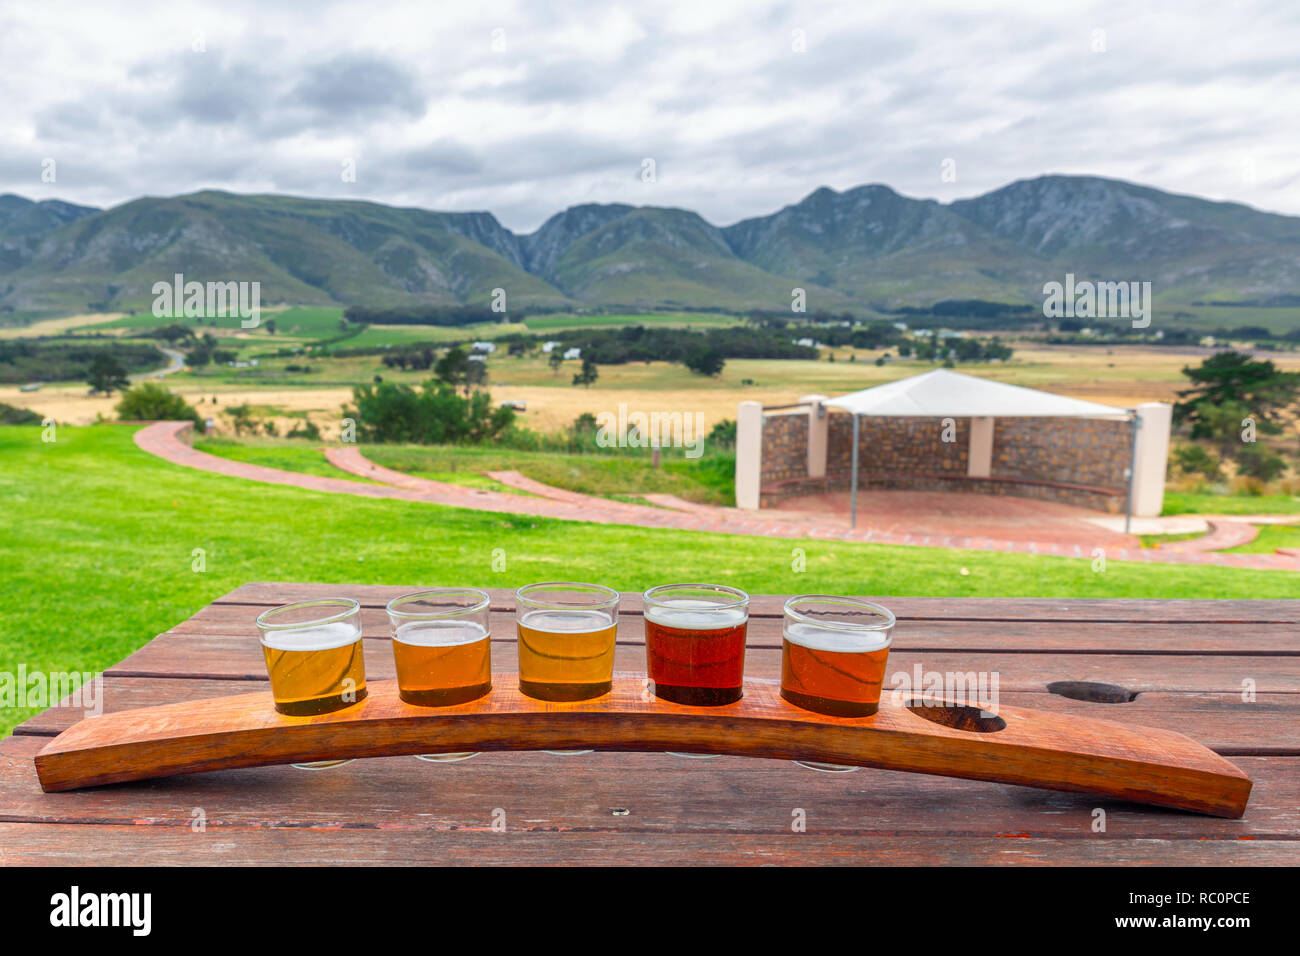 Beer Tasting Glasses On A Wooden Tray Outside The Brewery With A